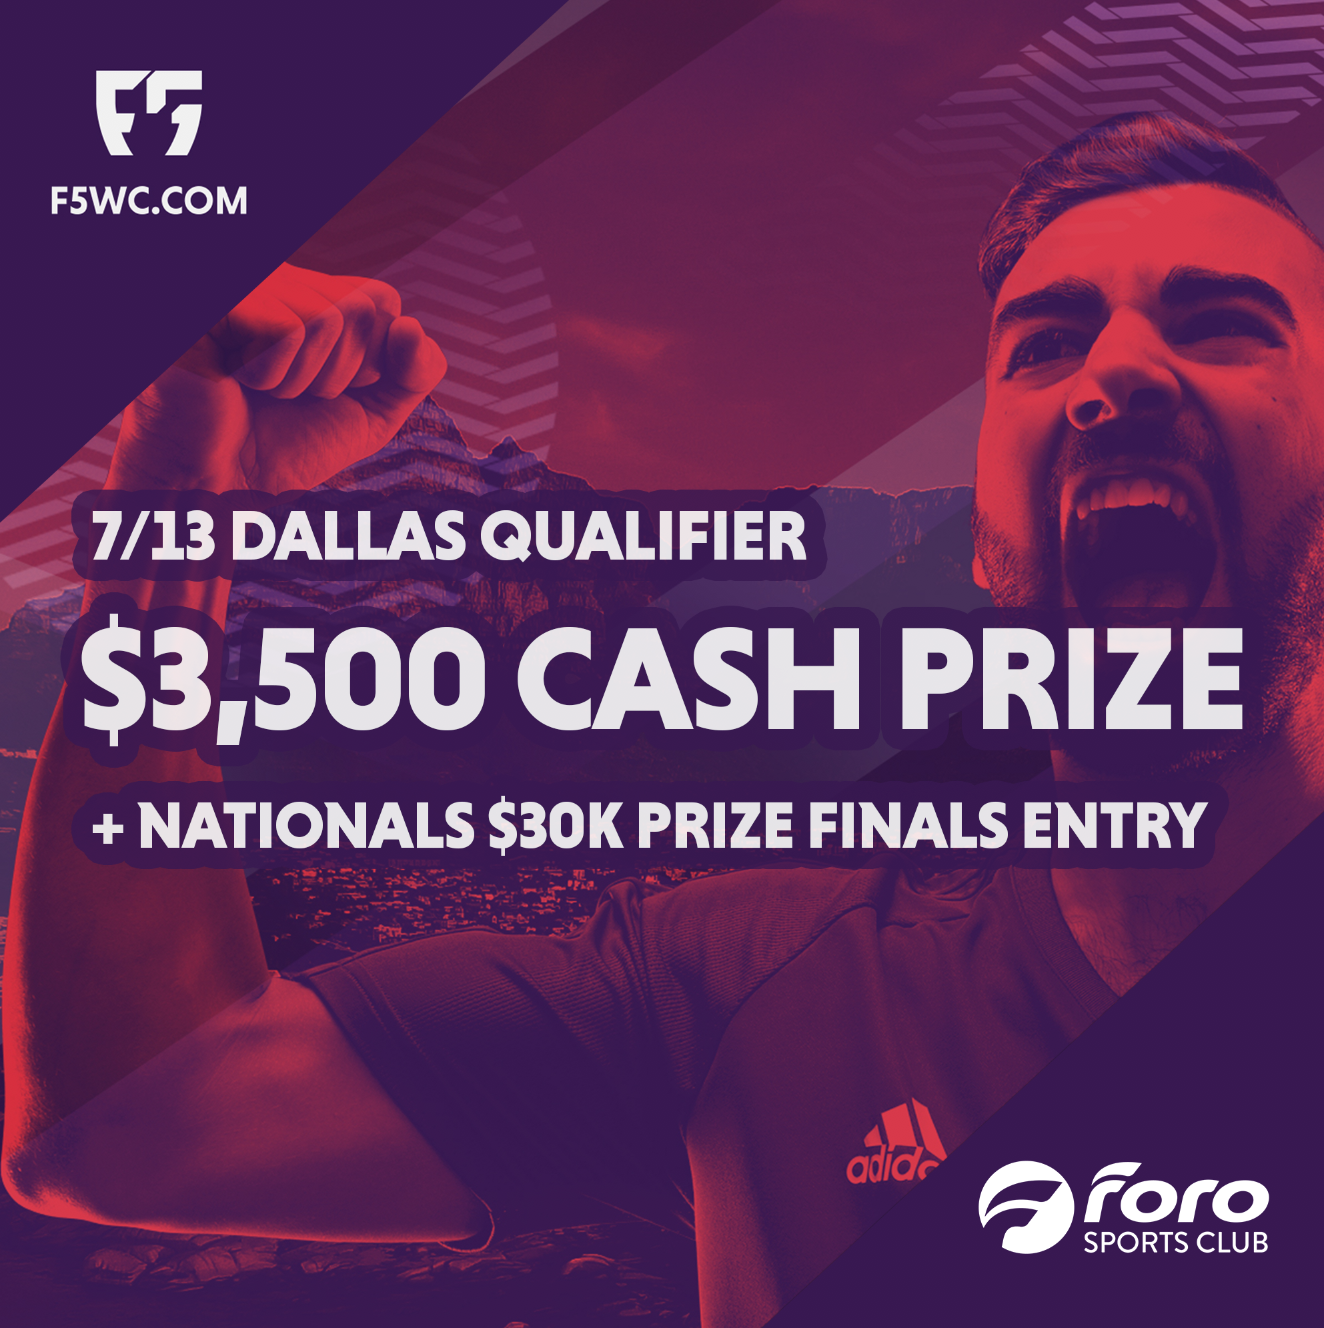 F5USA Dallas Qualifier - July 13th at Foro! 9AM-6PMMen's Adult 5v5Minimum age: 16 years oldRegistration: $550, $500 earlybird (June 15)First place $3,500 CASH PRIZE plus entry into the $30k cash prizes national tournament!Second place, free entry into national tournament!NATIONAL CHAMPION QUALIFIES FOR WORLD CHAMPIONSHIP in South Africa!Create a team and register below for the Dallas qualifier, or register for your local qualifier here.You can also register for the Nationals (Scroll Down)Hosted by Foro Sports Club // Supported by City Socceralex@forosportsclub.comRegister Here(cash prizes dependent on registration)